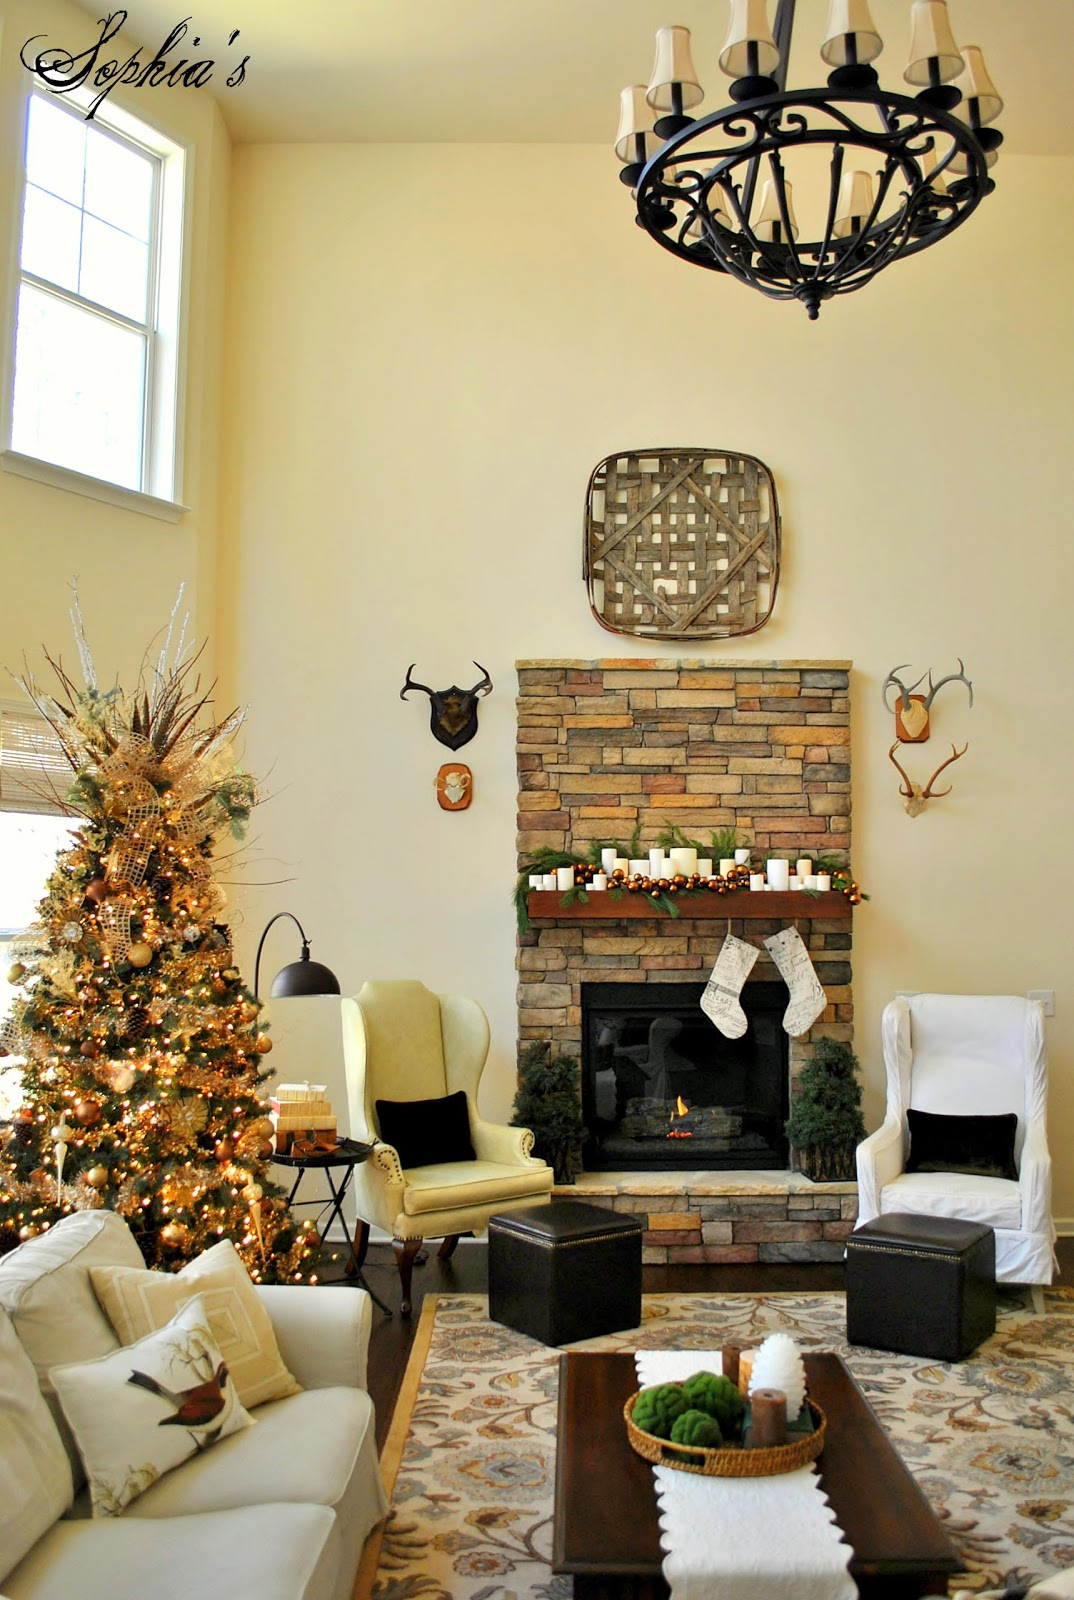 Sophias Great Room Rustic Christmas